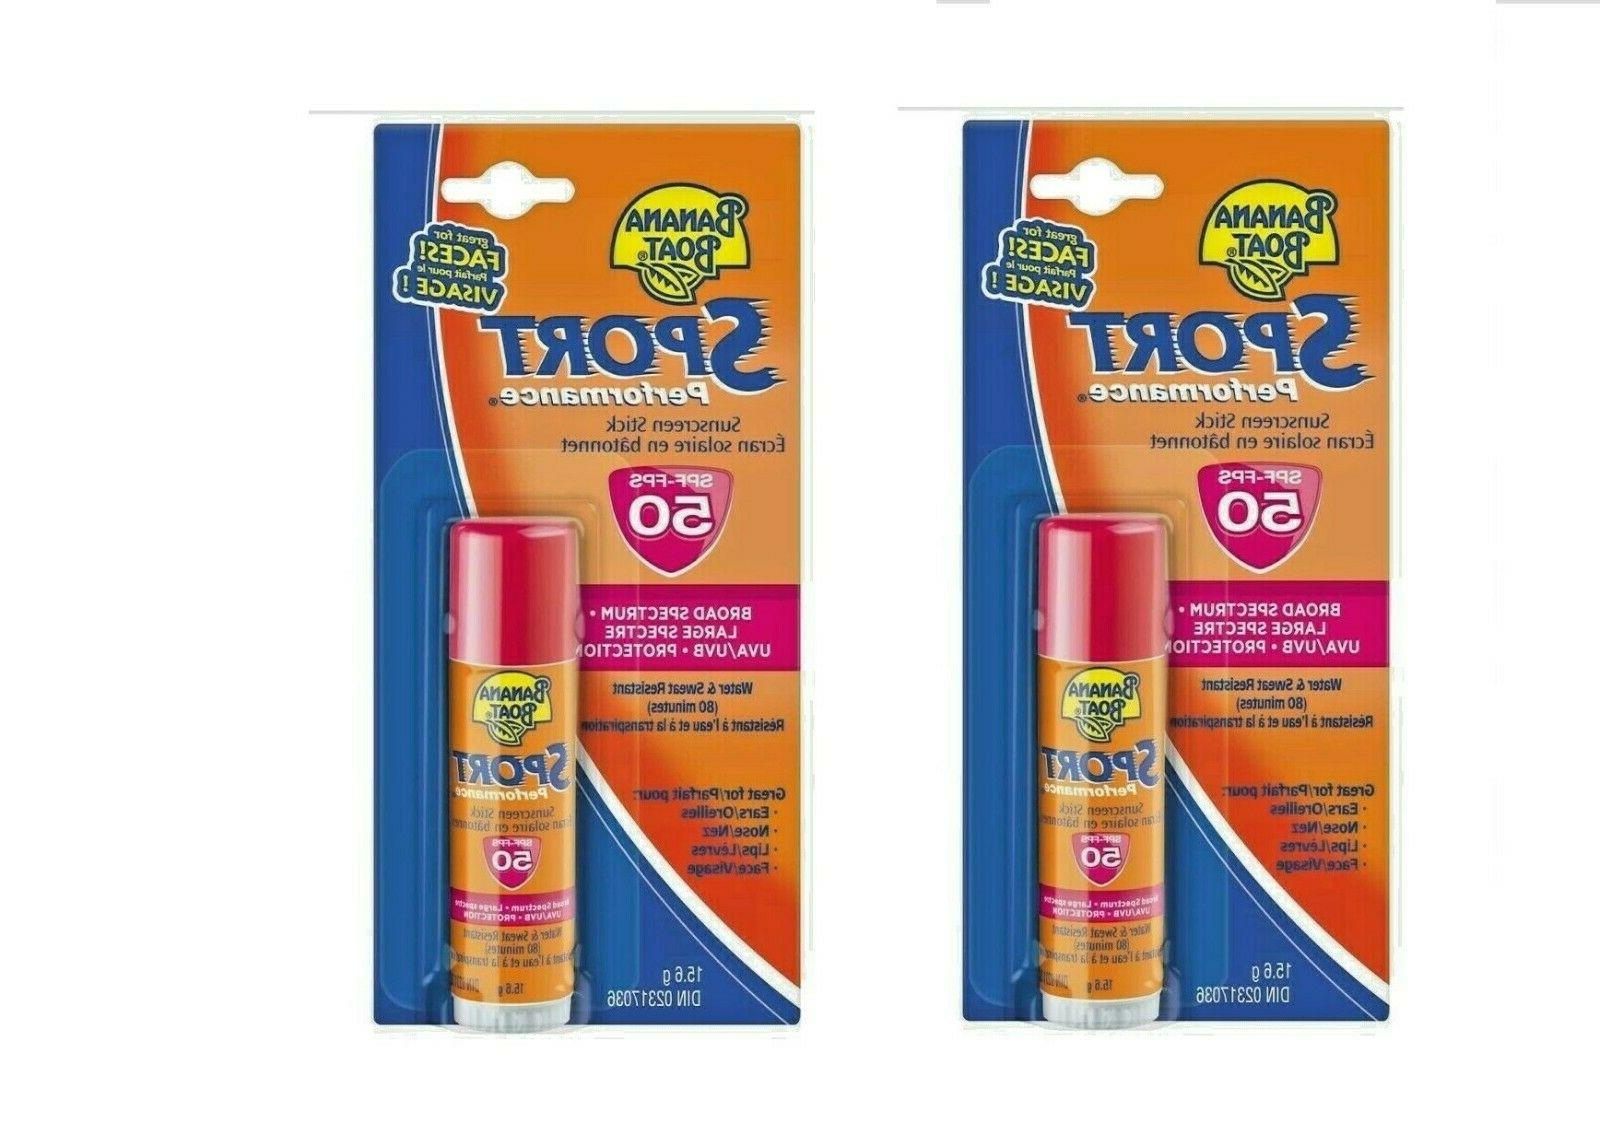 2 x sport performance broad spectrum sunscreen